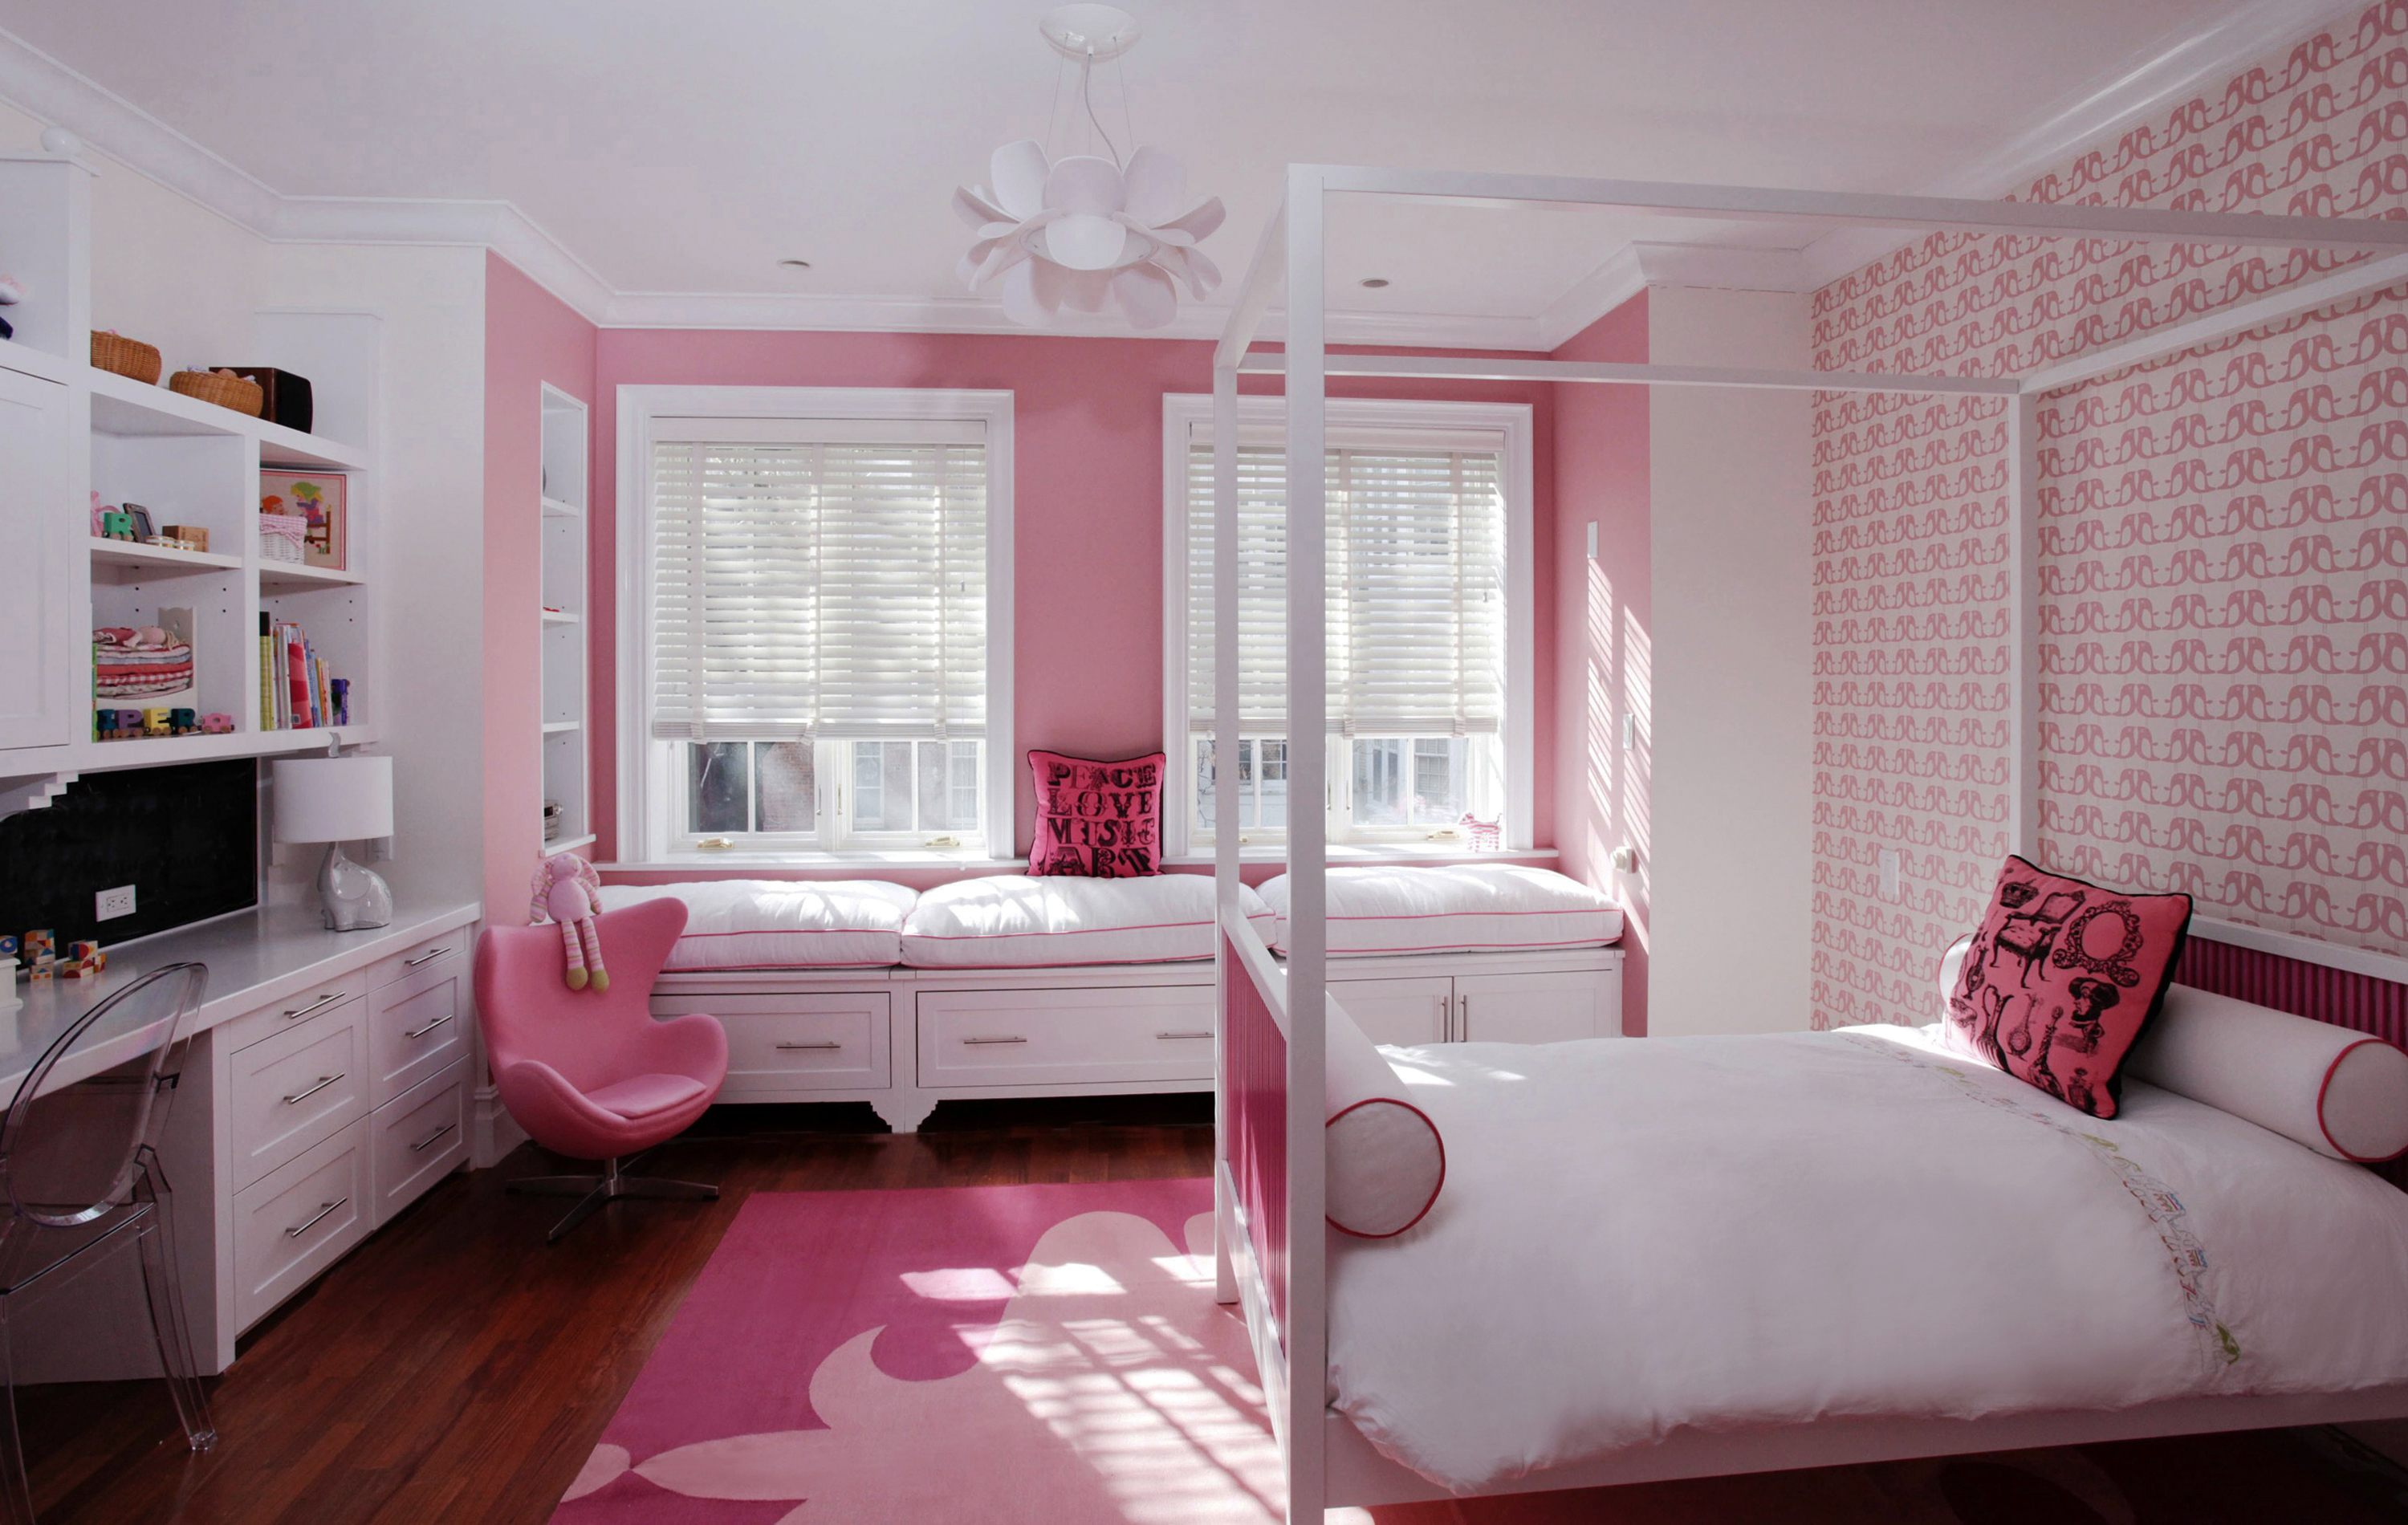 Interior design bedroom for teenage girls pink type for Pink teenage bedroom designs